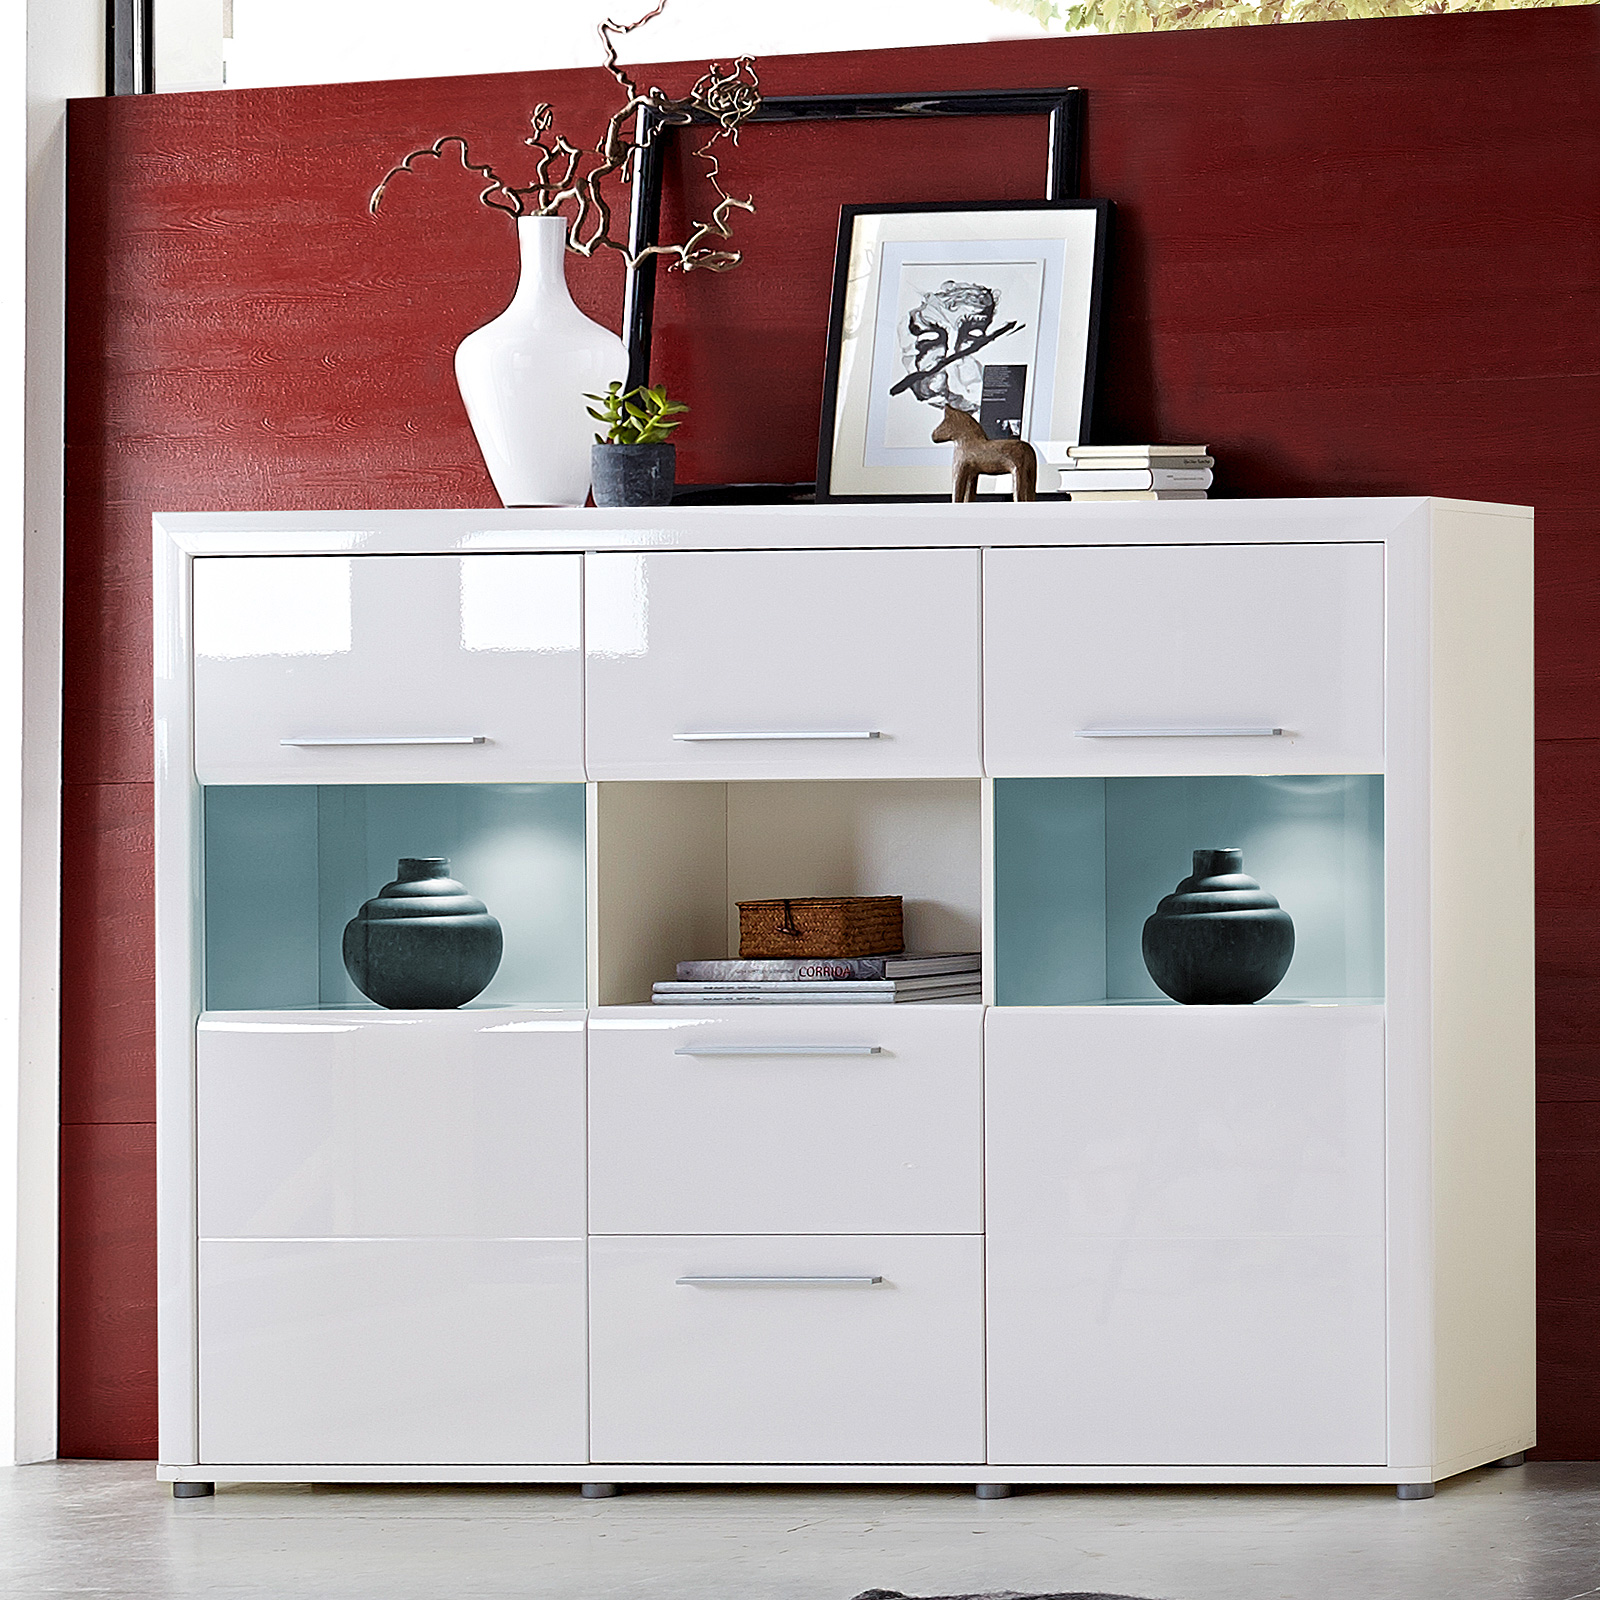 highboard run vitrine schrank wohnzimmerschrank in wei hochglanz inkl led ebay. Black Bedroom Furniture Sets. Home Design Ideas